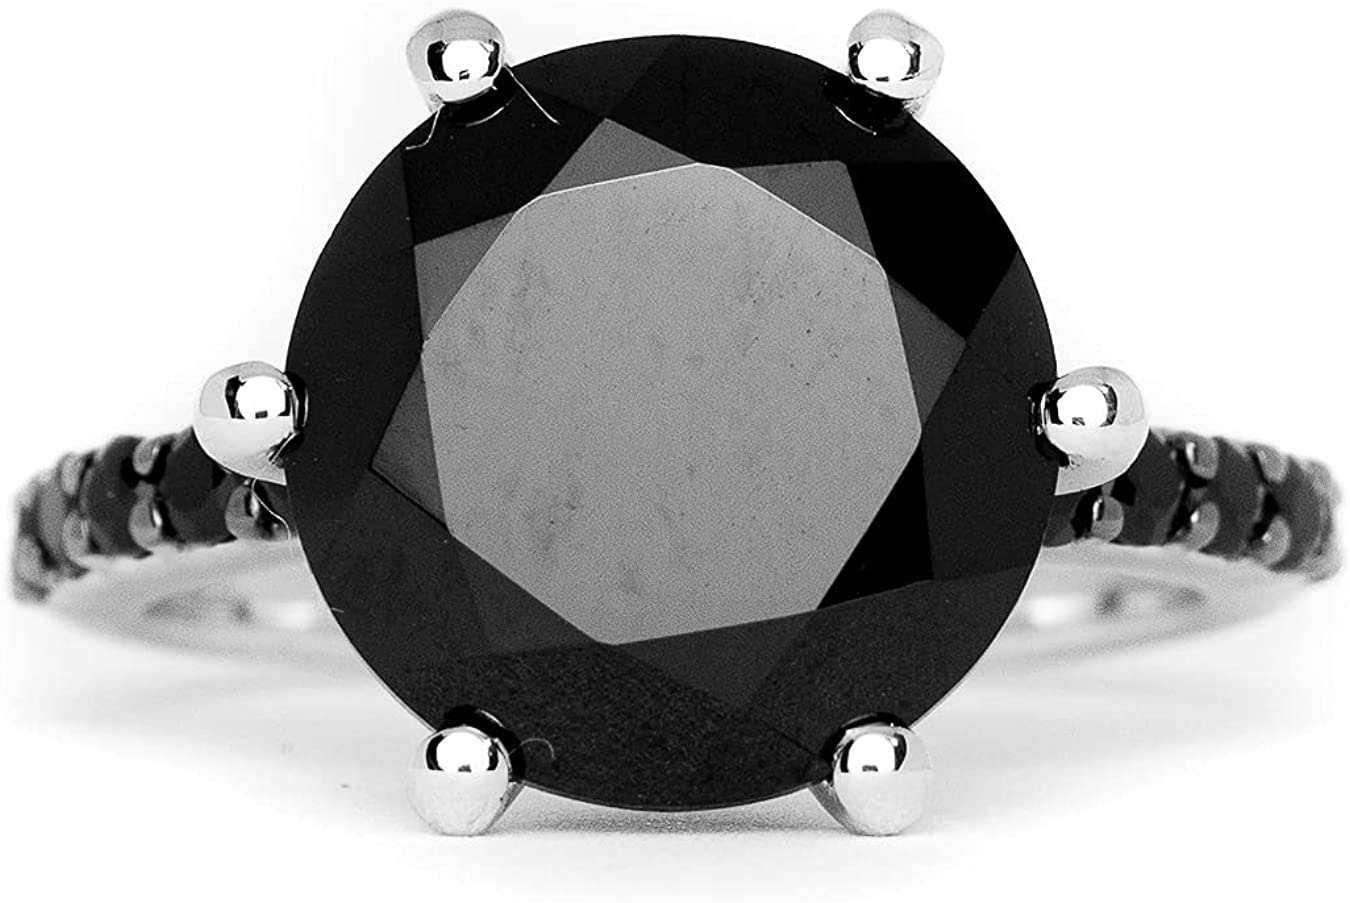 HIFLYER JEWELS Stunning Black Max 61% OFF OFFicial shop Spinel 925 Solid Sterling Ring Sil